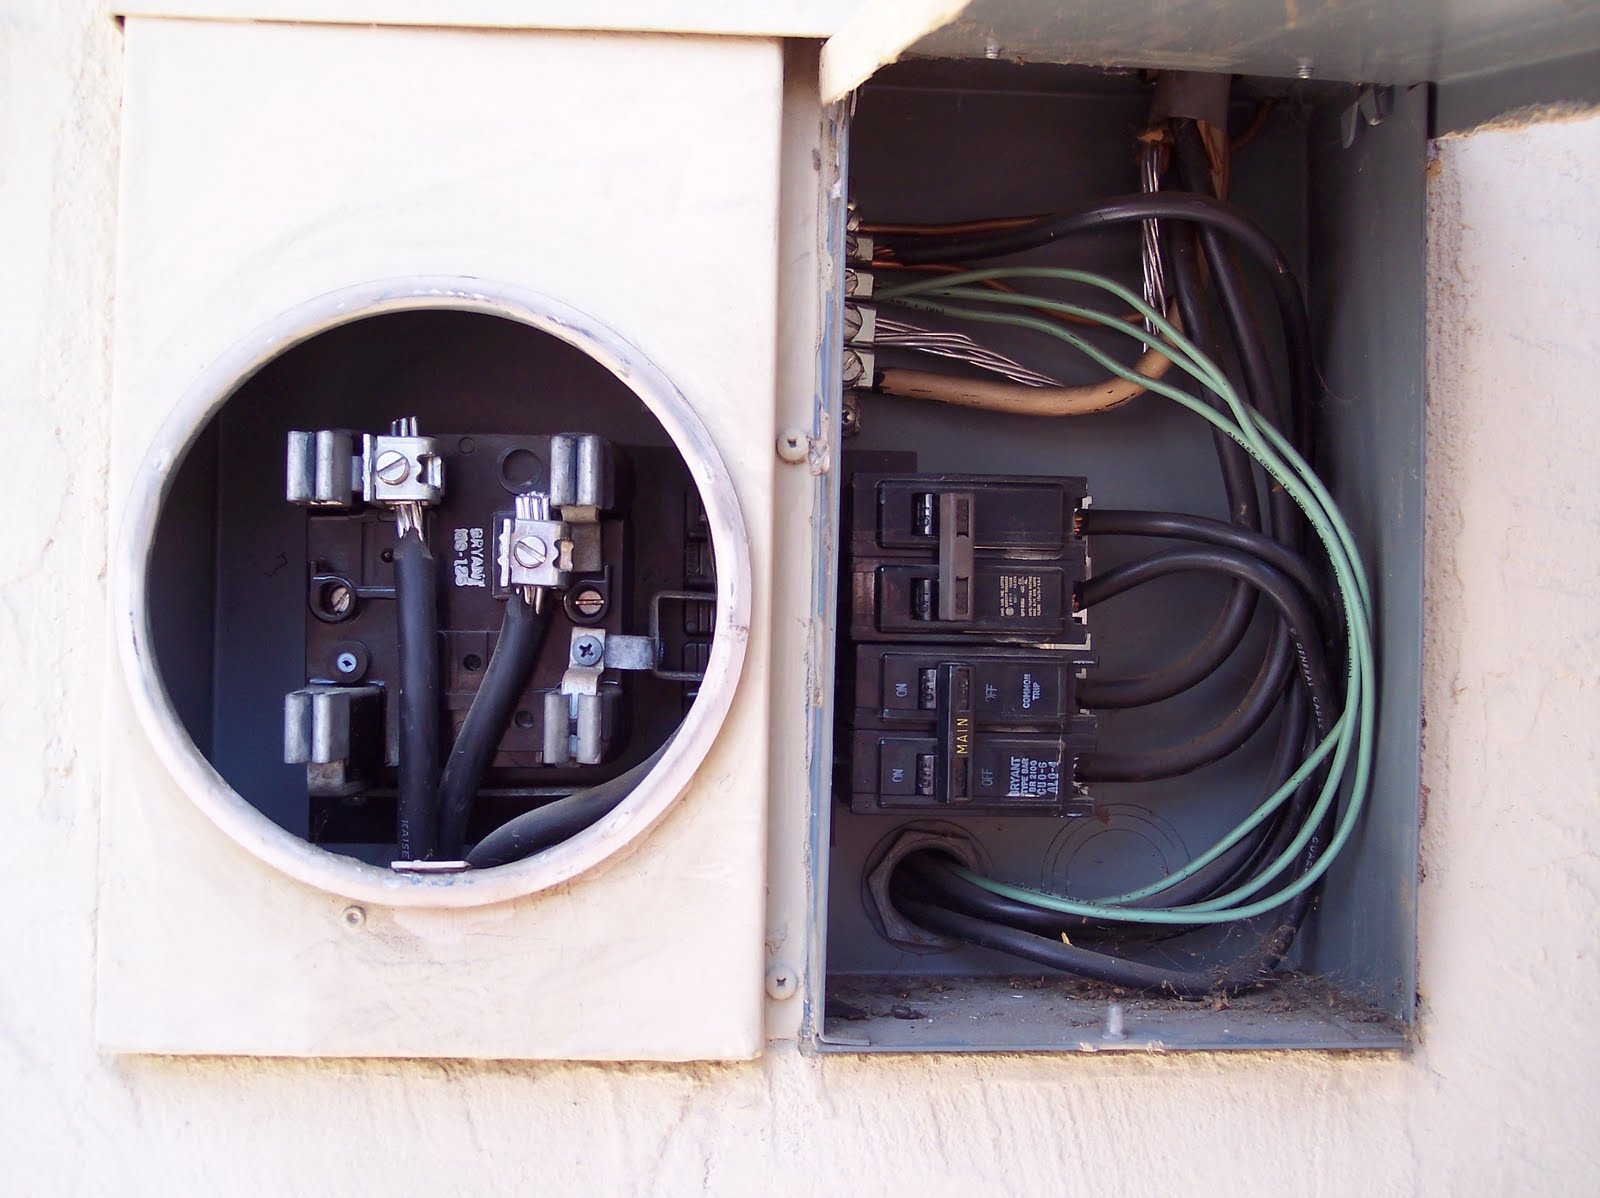 small resolution of electric meter bryant ms 125 needs the load socket and bus bar replaced aluminum wires from main